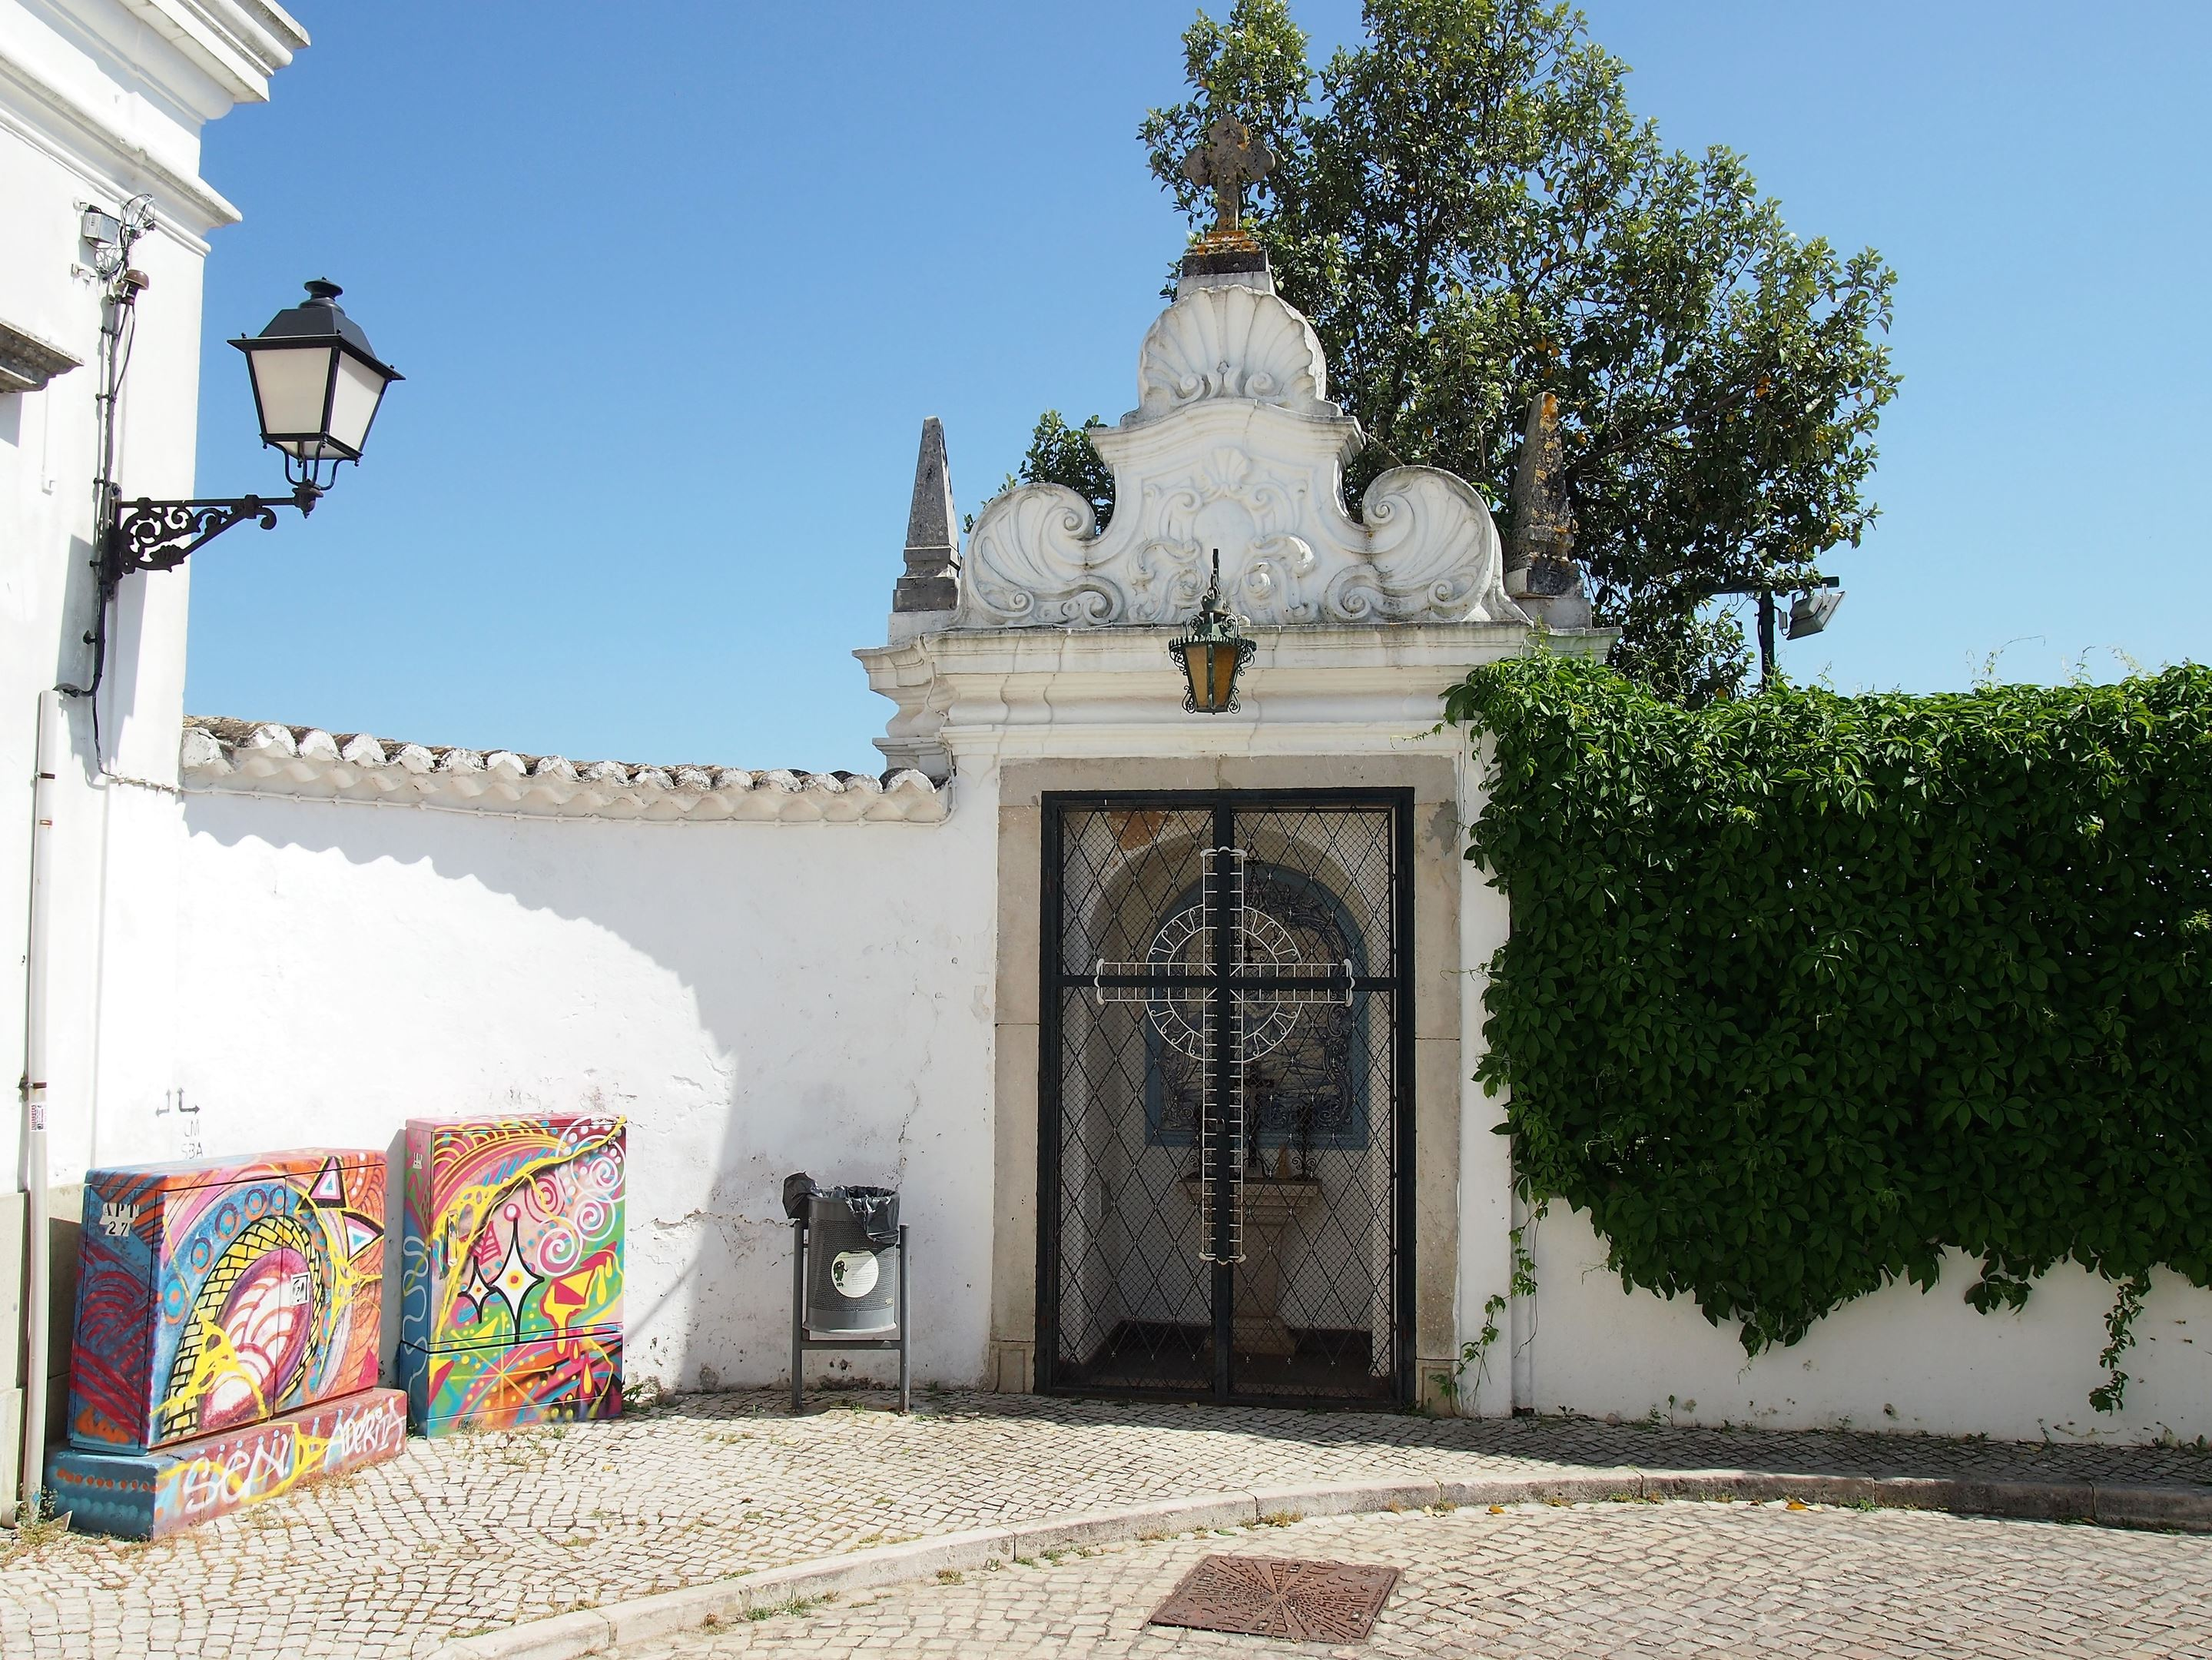 At the entrance to the Jardim da Verbena, São Brás de Alportel. This garden is all that remains of a former palace where the bishops of the Algarve would stay in the summer.